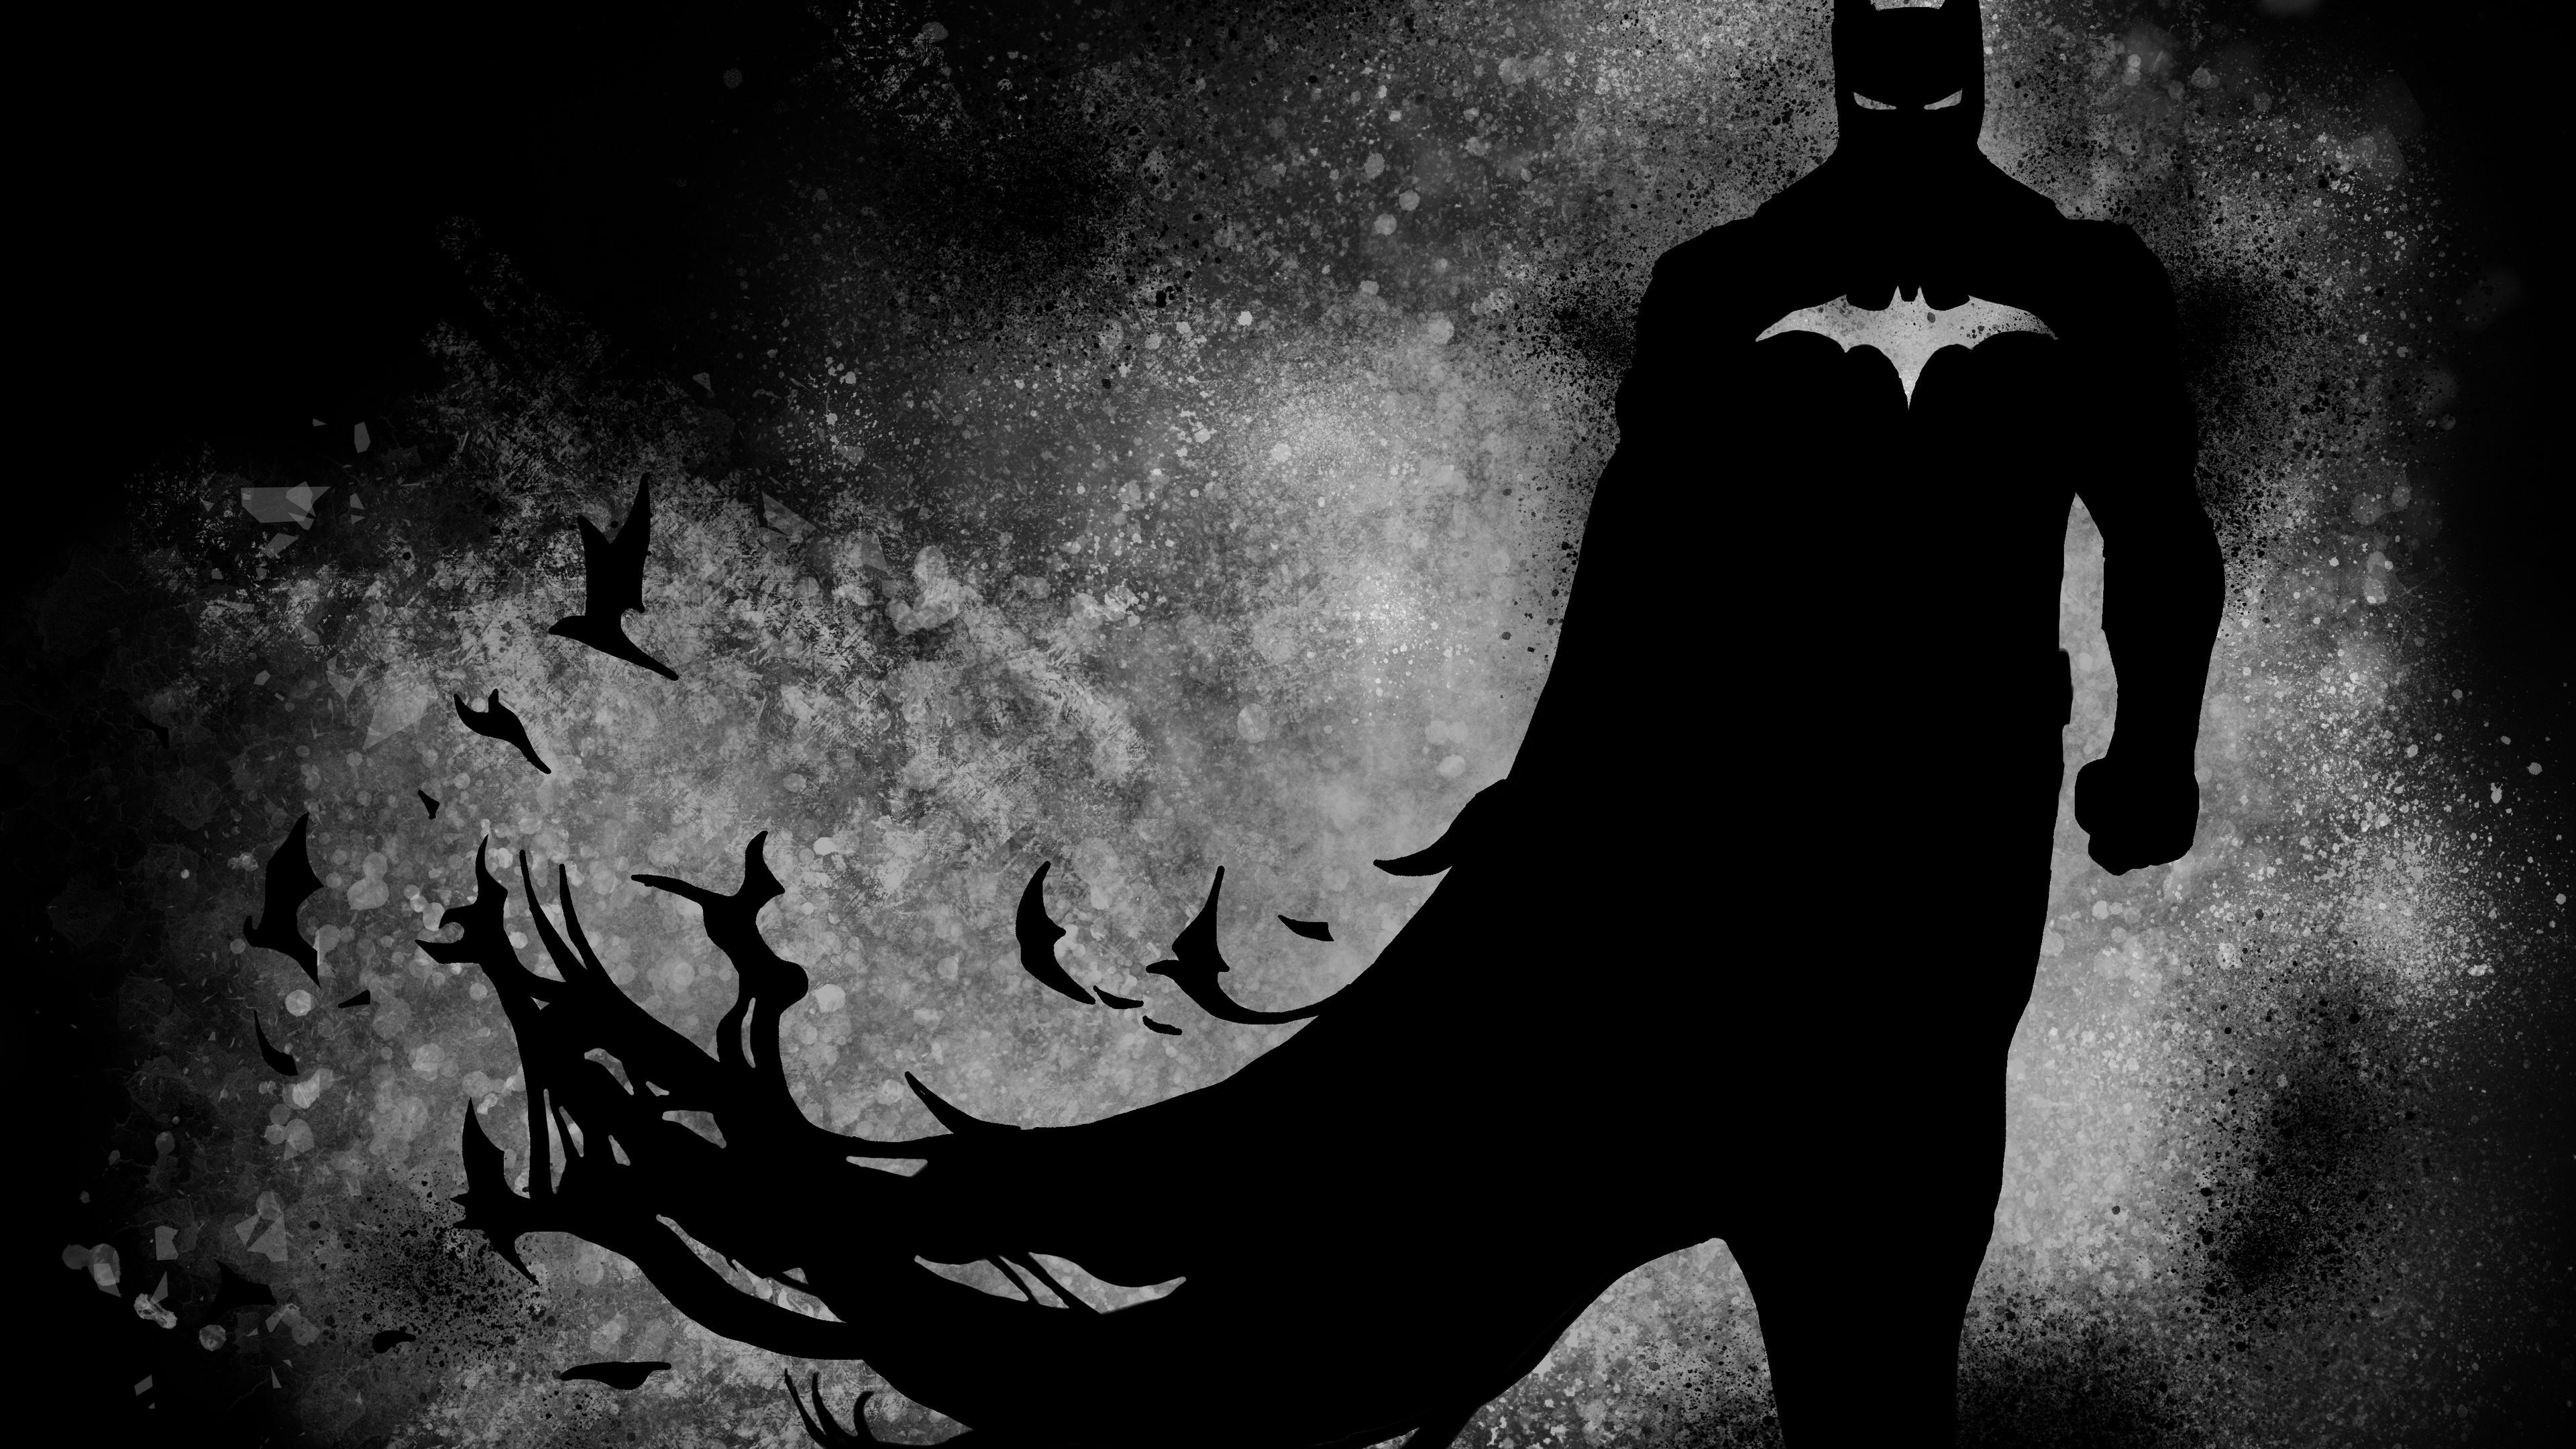 Awesome Batman Hd Wallpapers For Pc wallpapers to download for free greenvirals